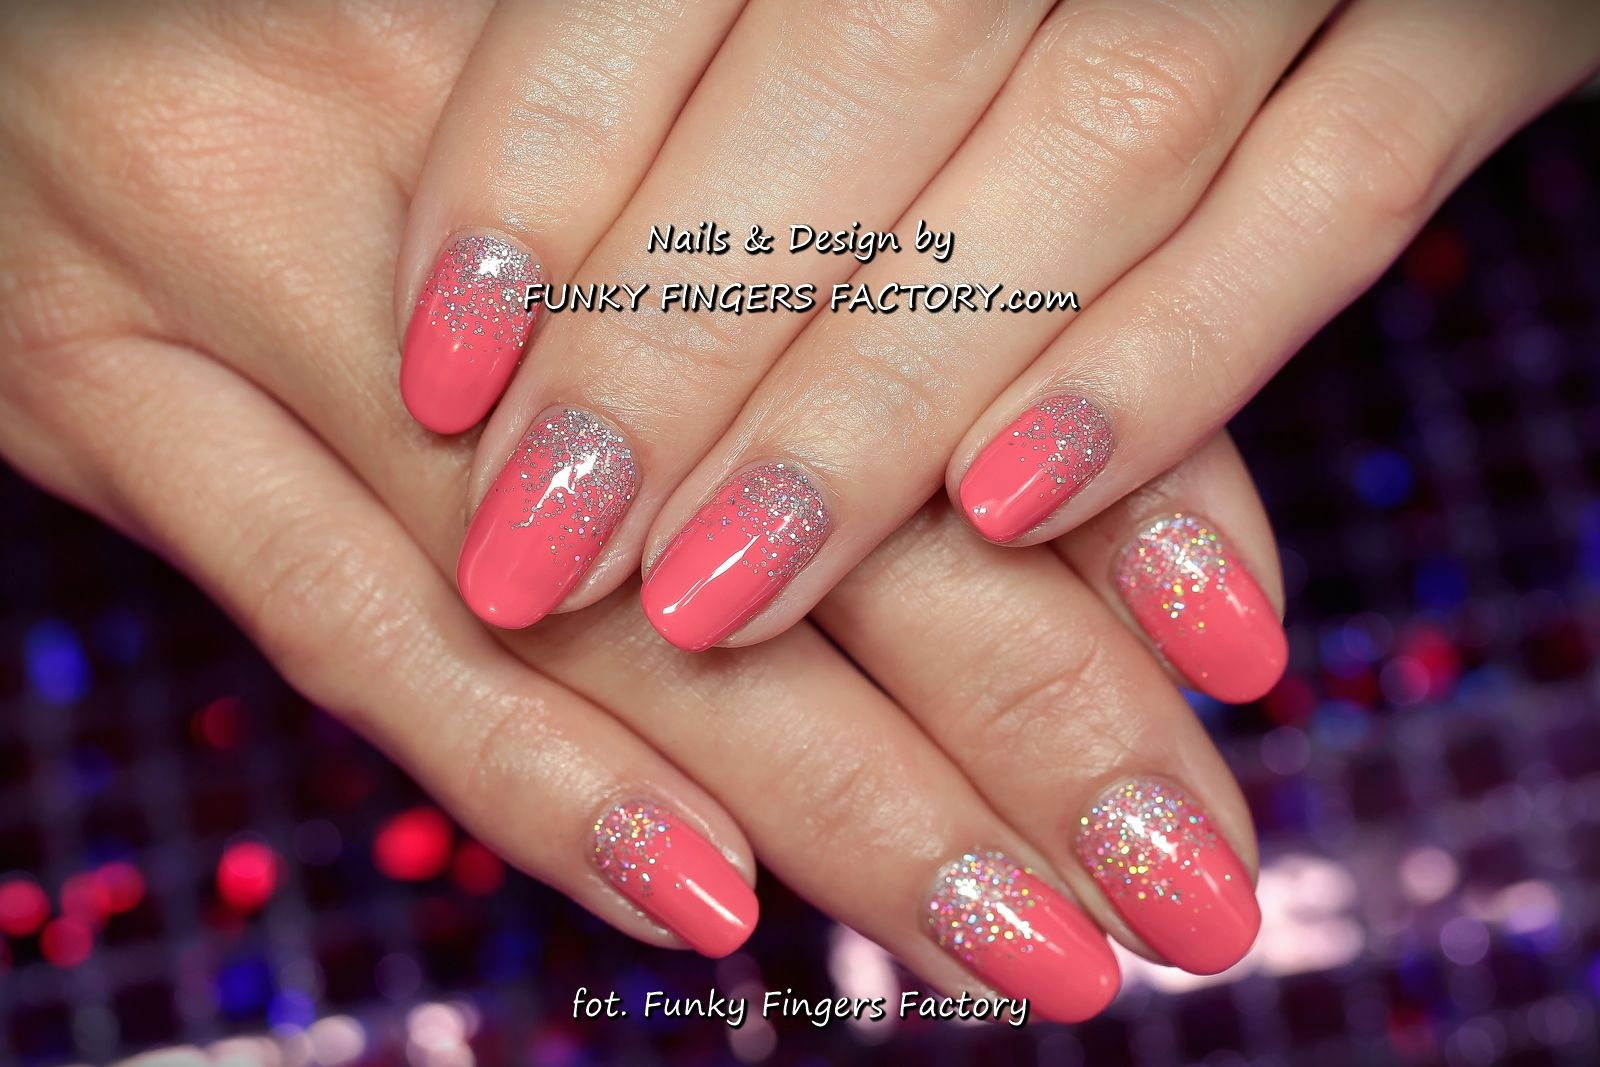 gelish coral and silver glitter ombre nailswww